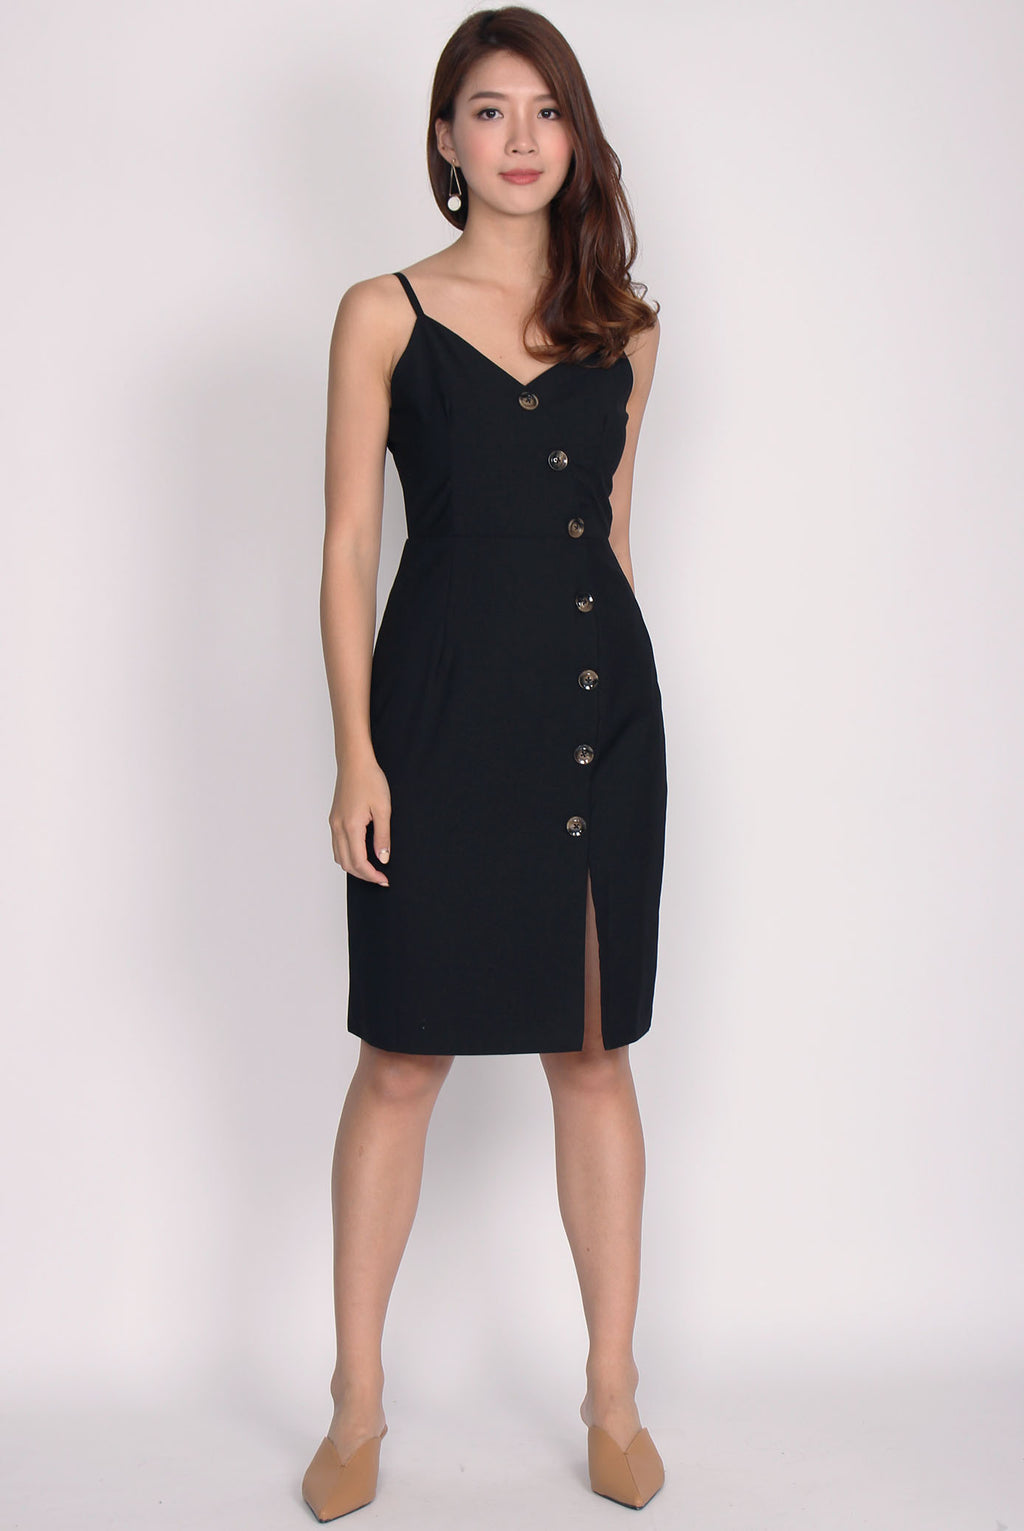 Eliette Wave Down Buttons Spag Dress In Black